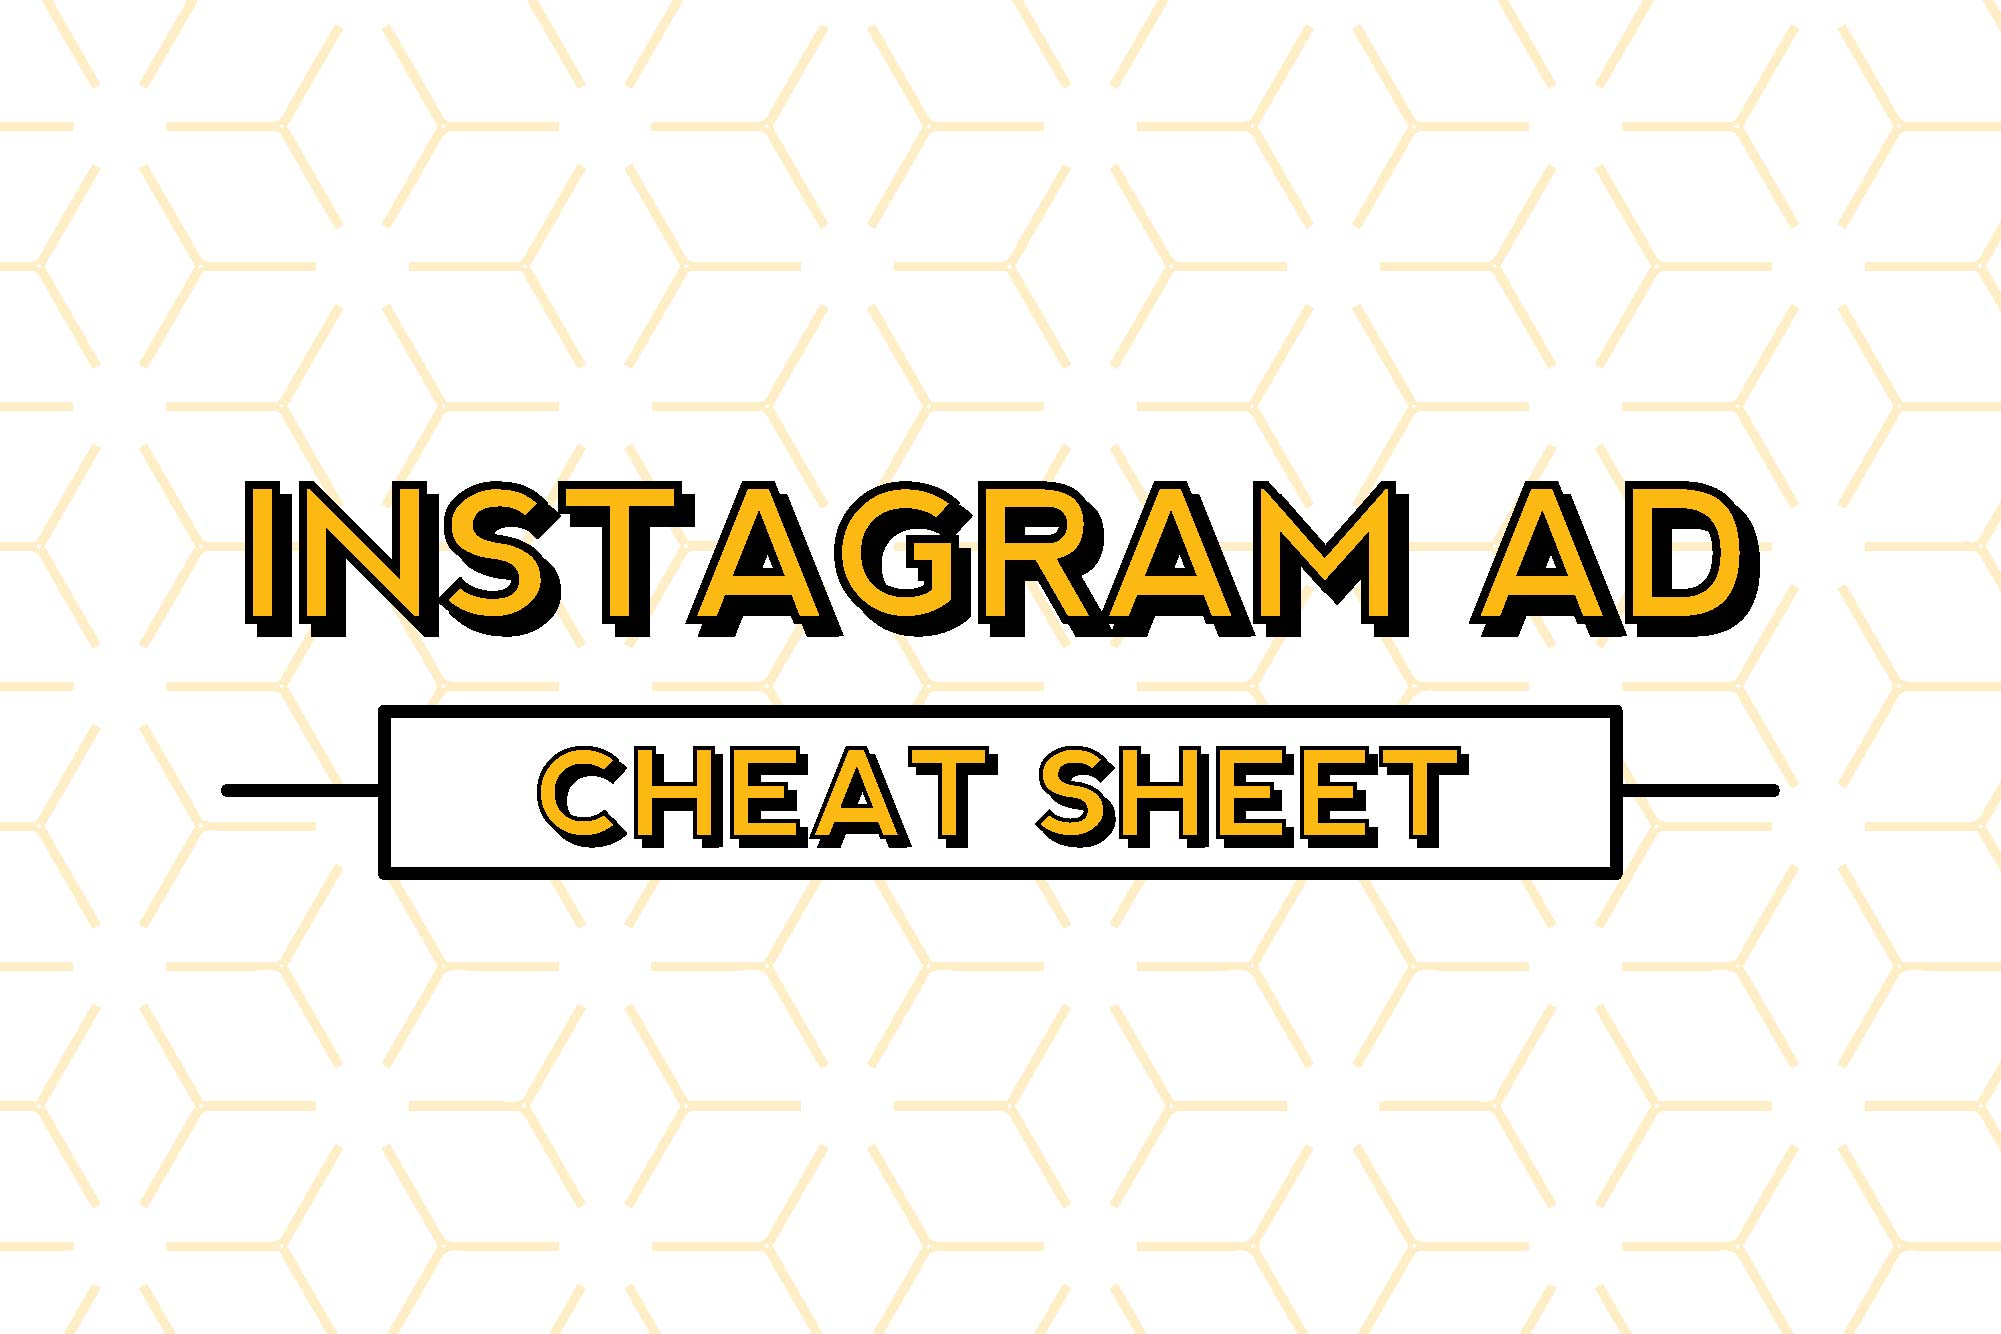 Instagram Ad Cheat Sheet